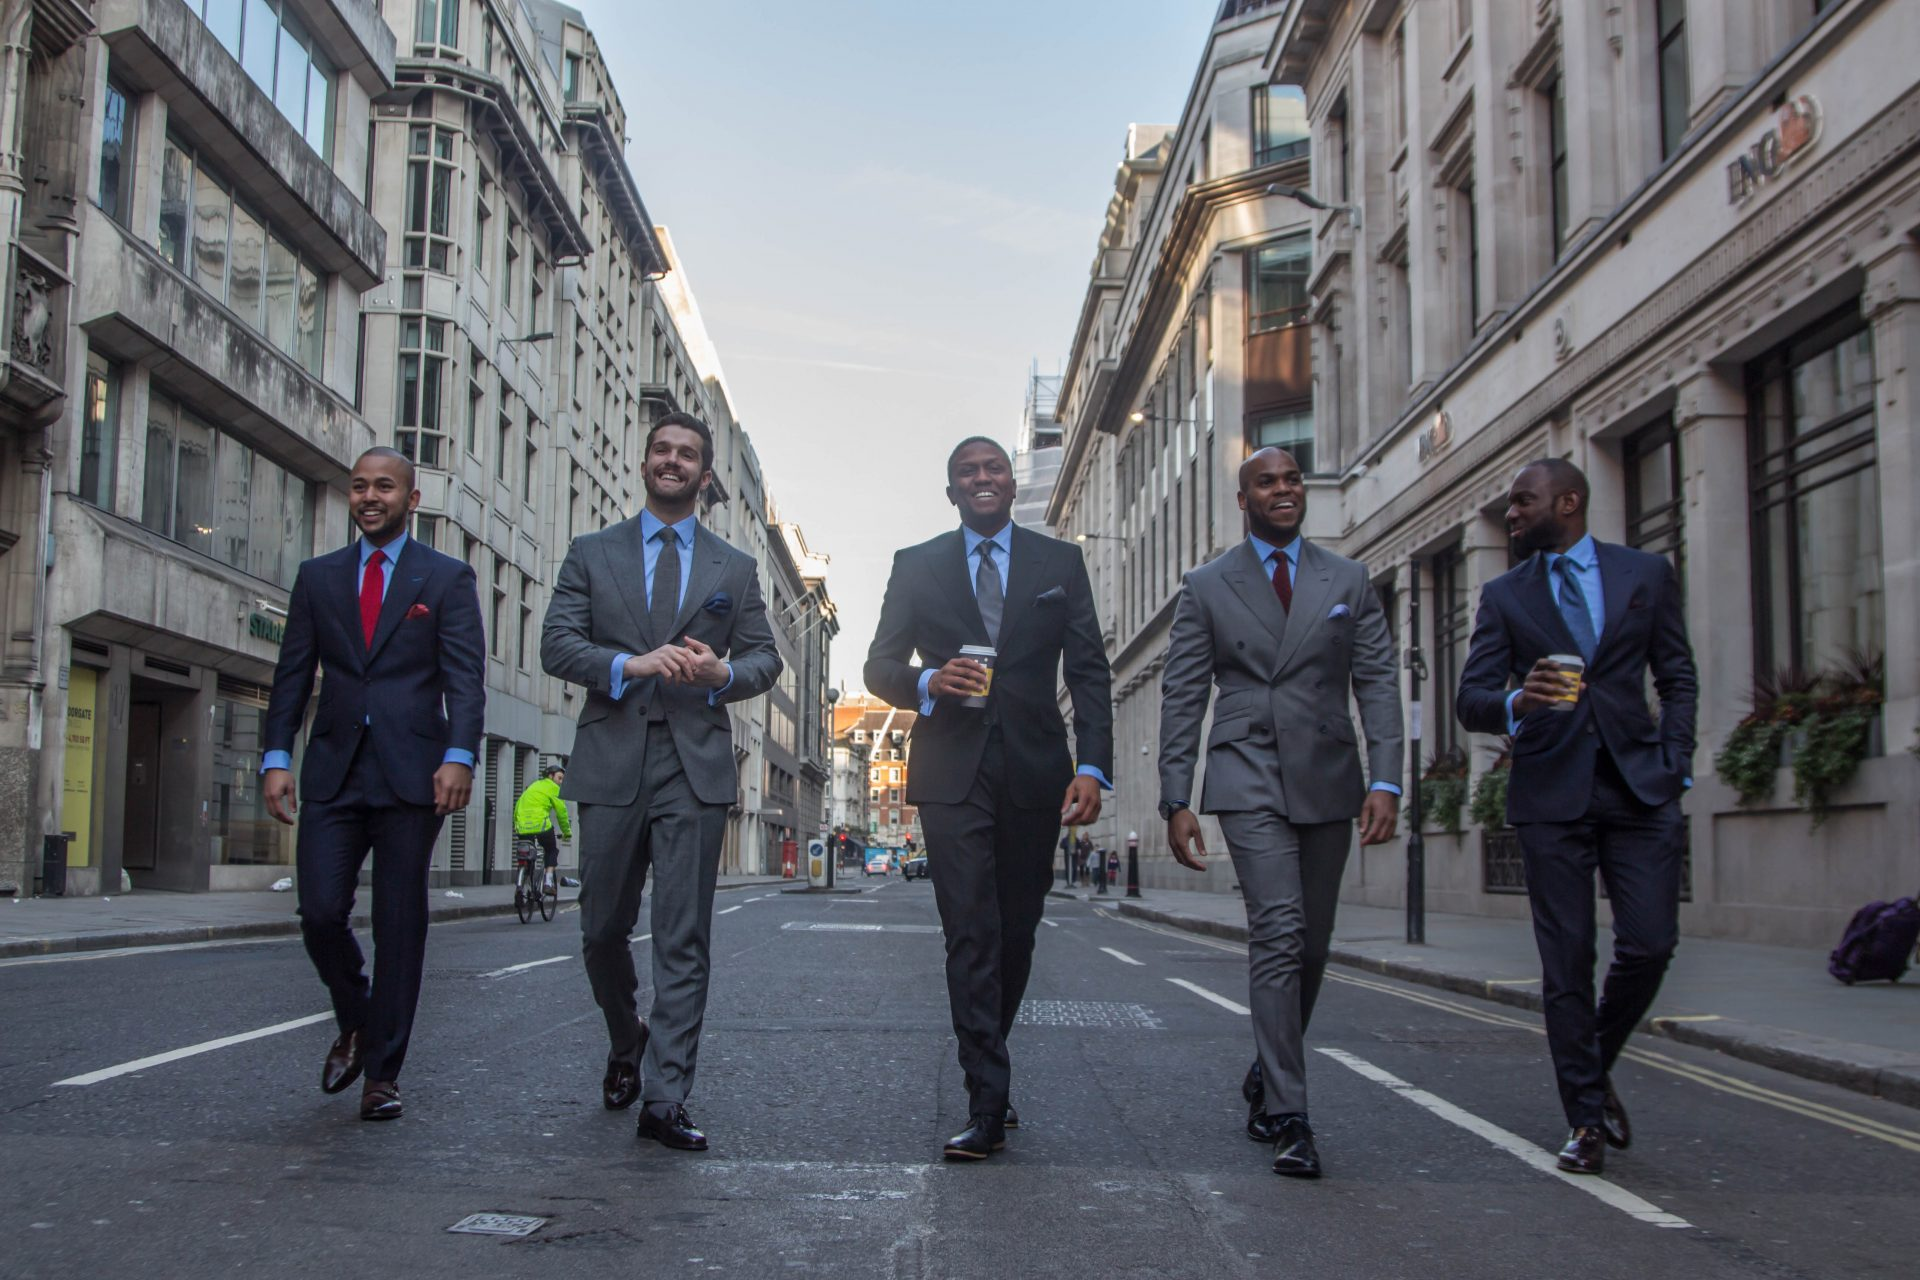 Male models wearing bespoke suits